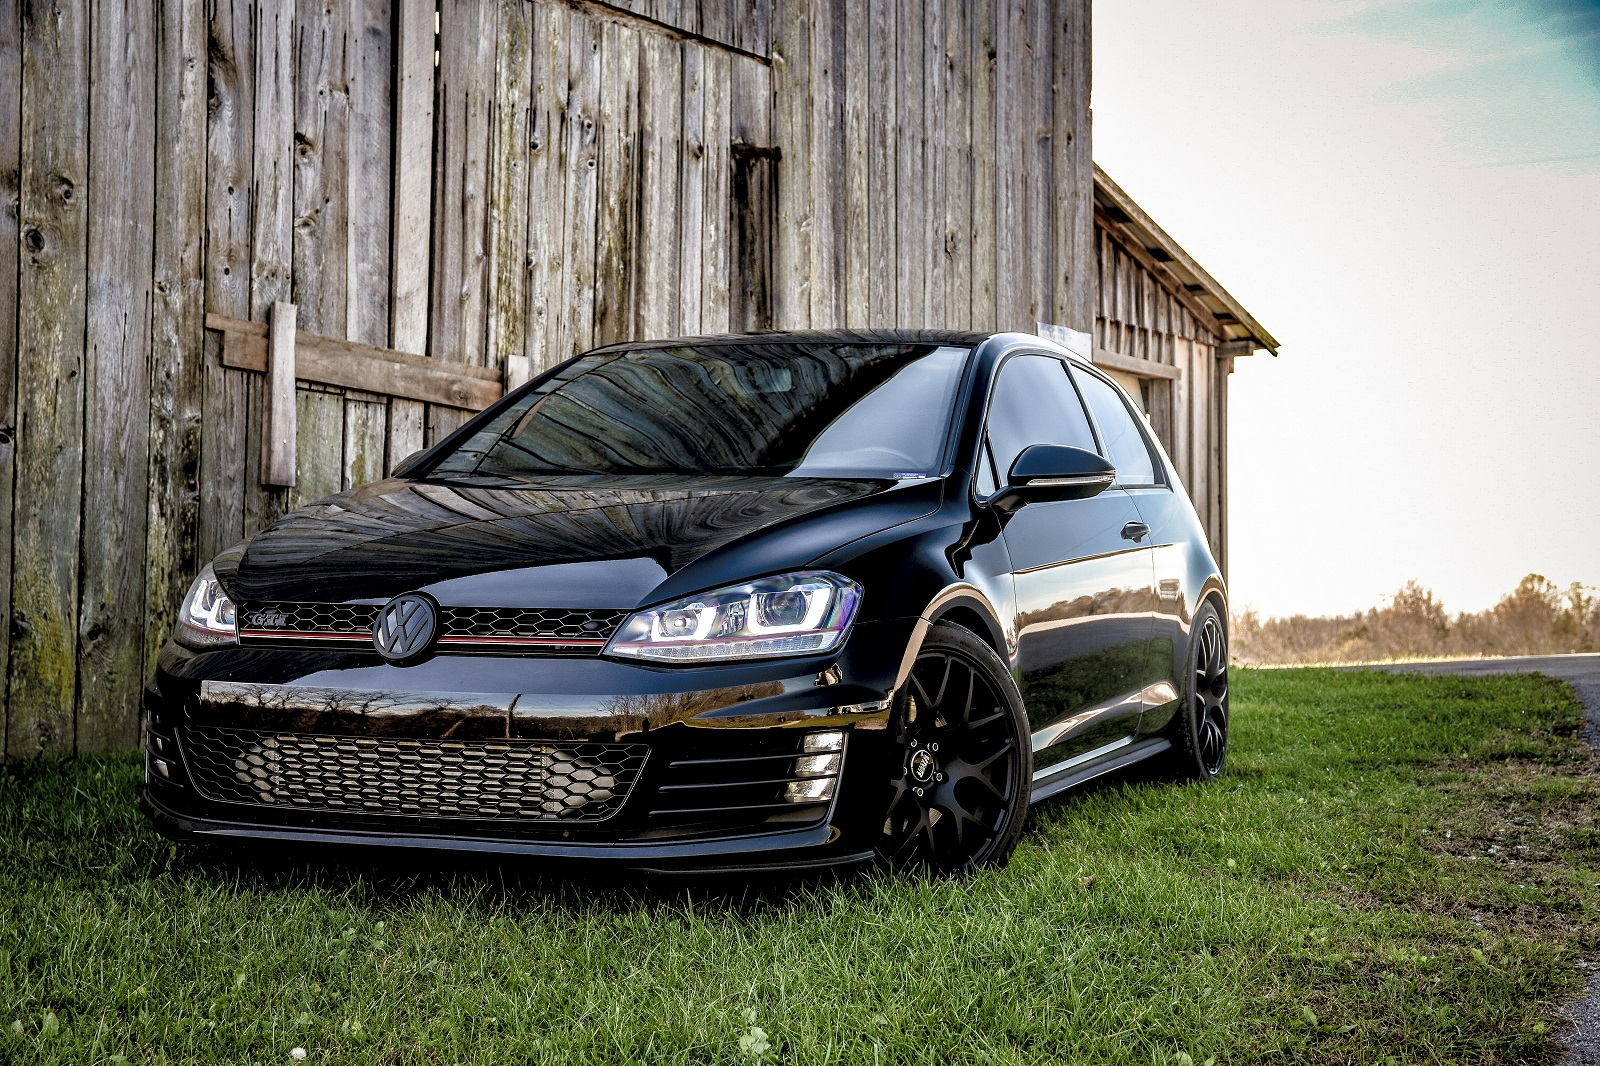 Official VMR Wheels Thread - Page 15 - GOLFMK7 - VW GTI MKVII Forum / VW Golf R Forum / VW Golf ...